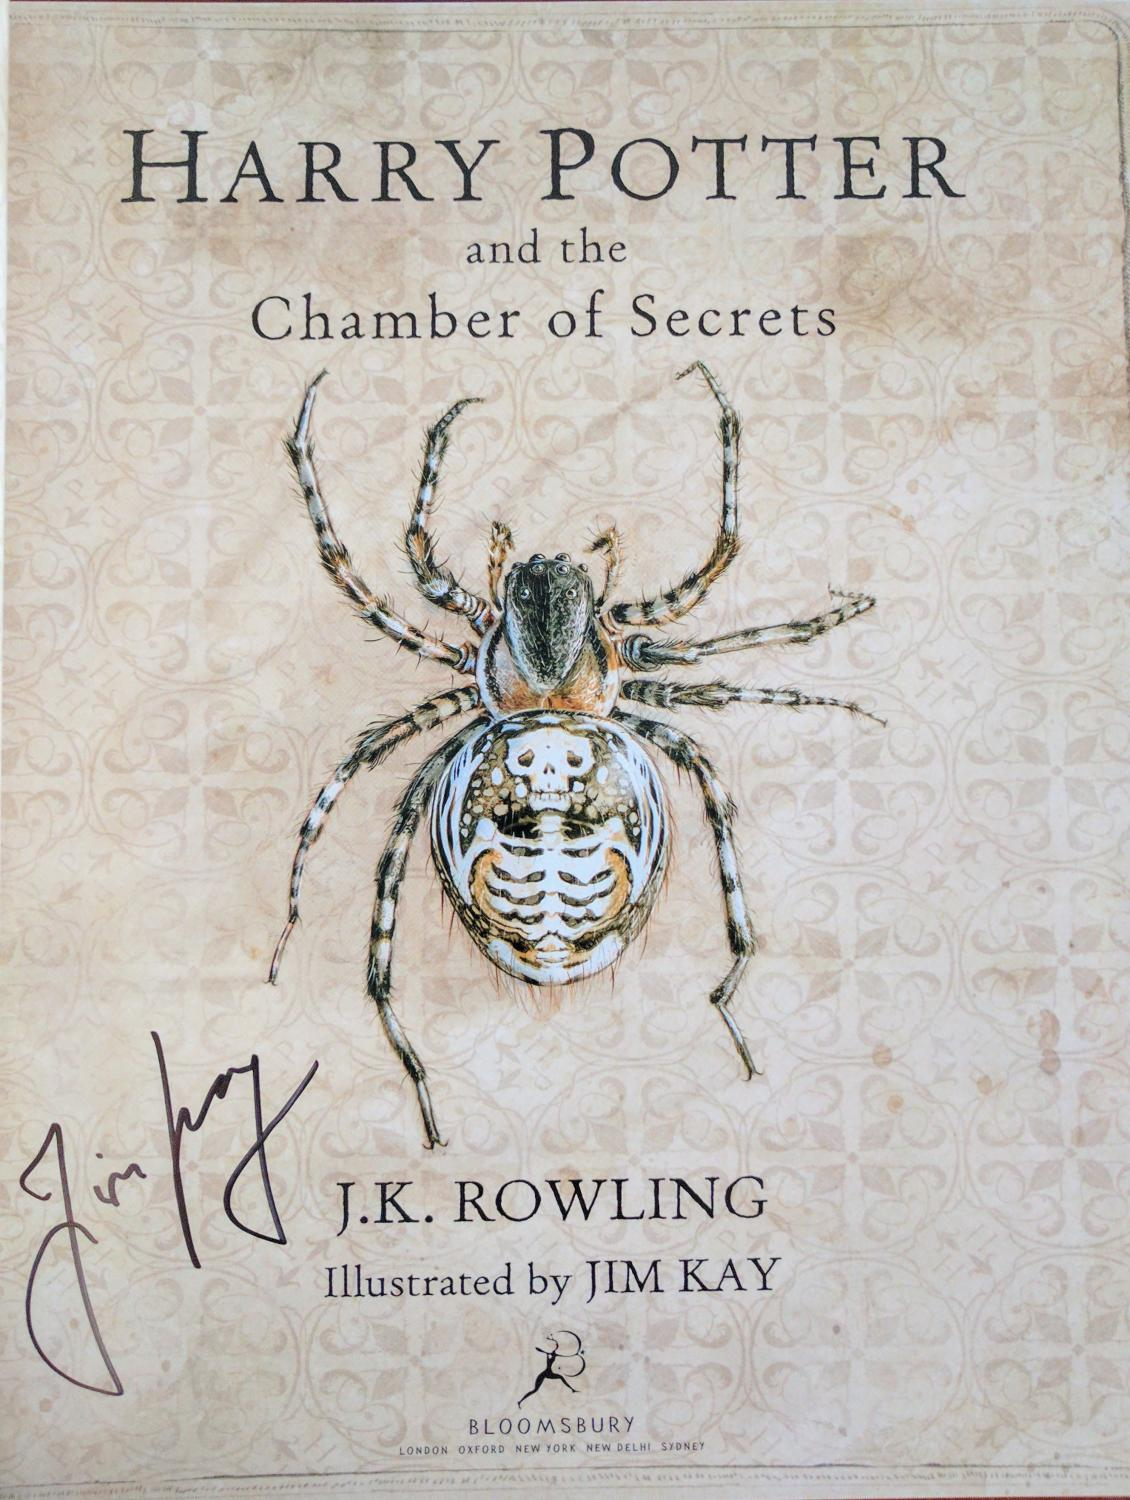 Harry Potter Illustrated Book Cover : Harry potter and the chamber of secrets deluxe